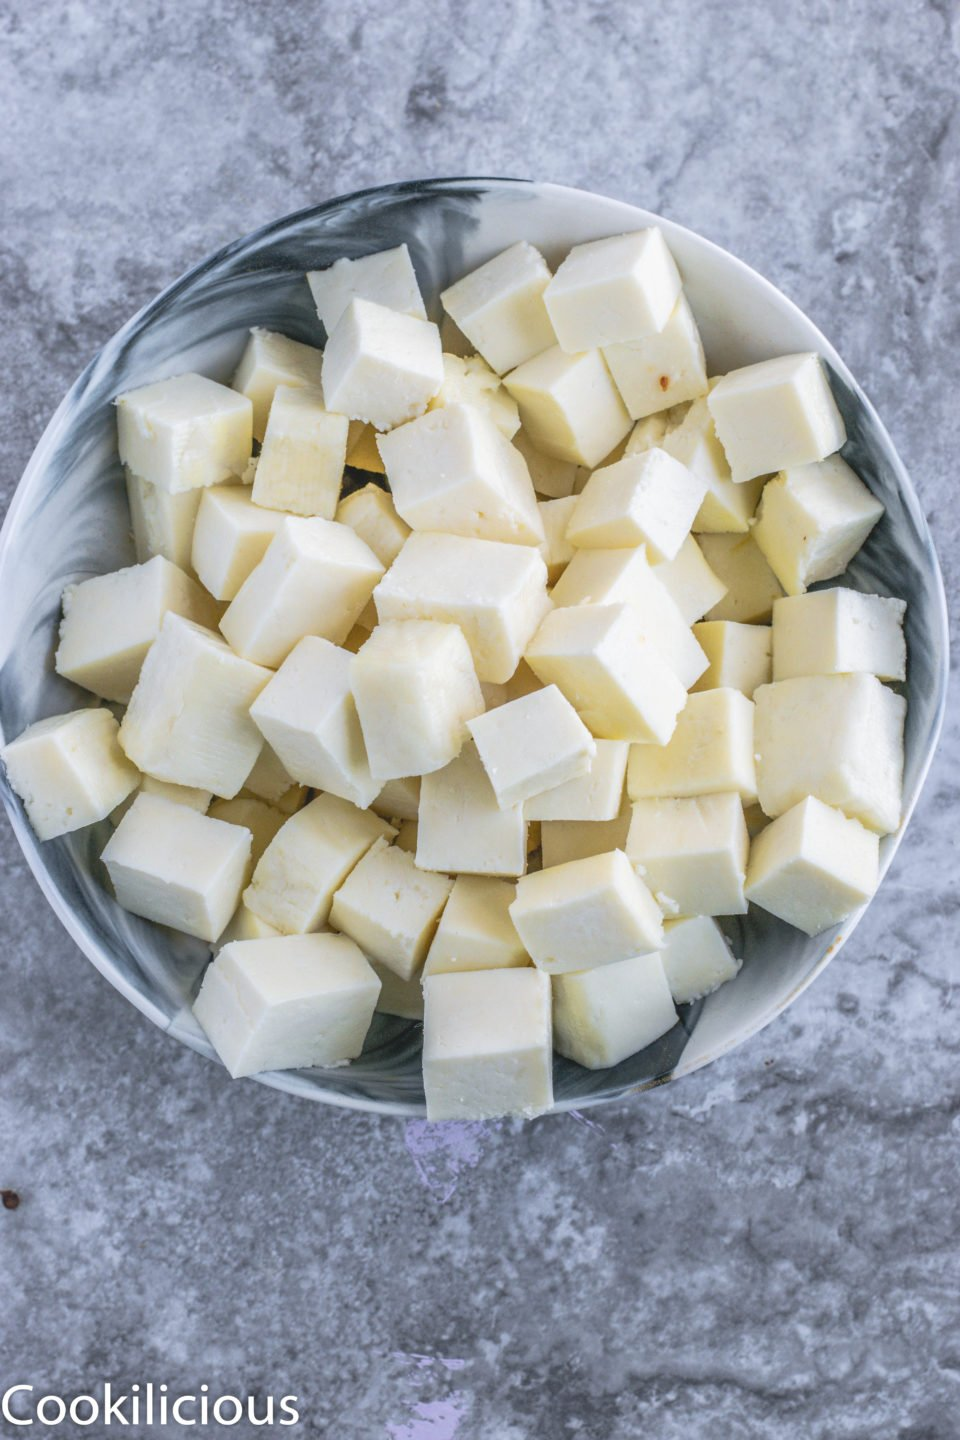 a bowl of cut paneer being used to make Achari Paneer